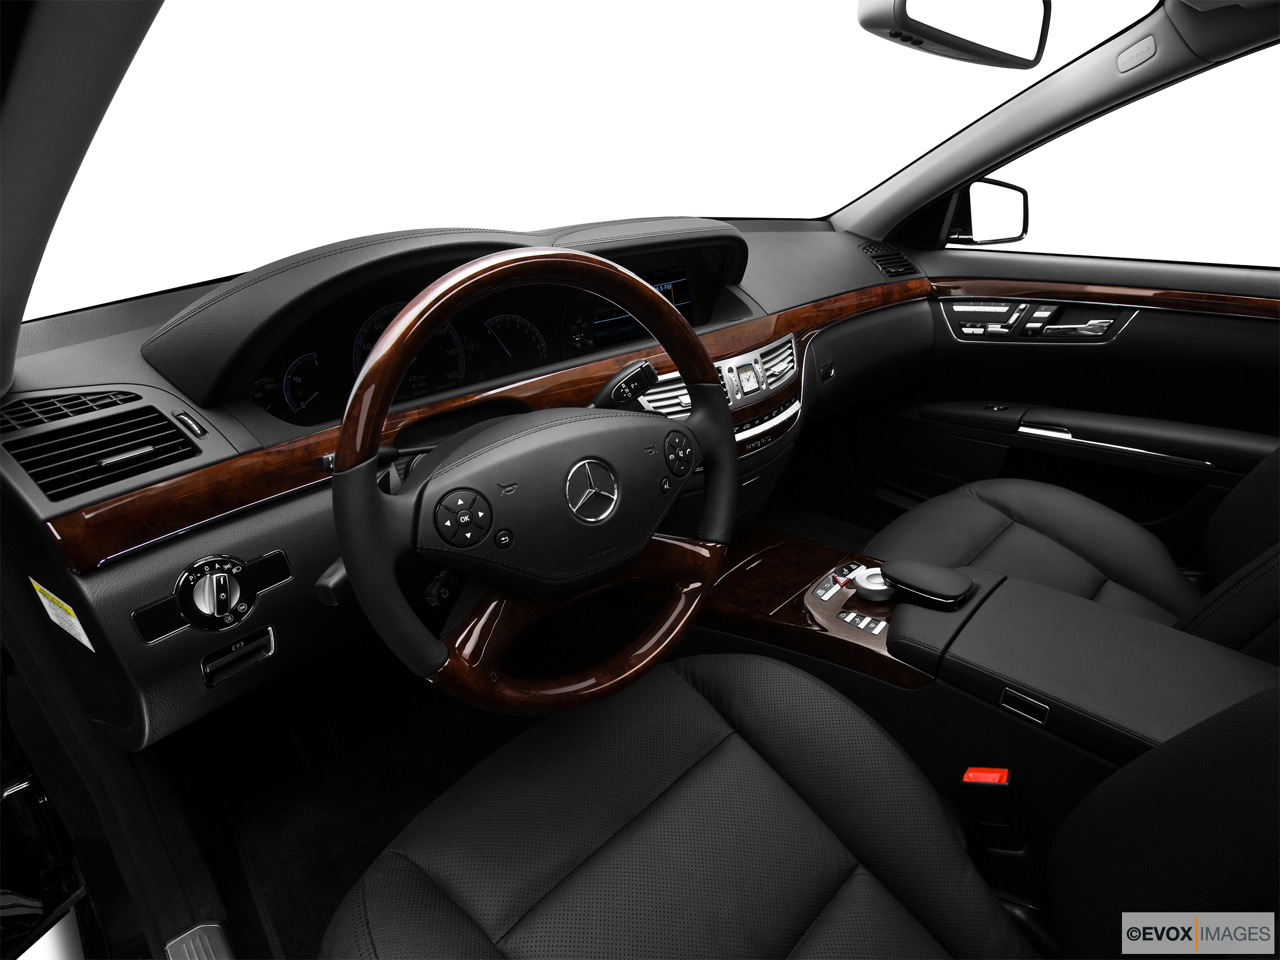 2010 Mercedes-Benz S-Class Hybrid S400 Interior Hero (driver's side).